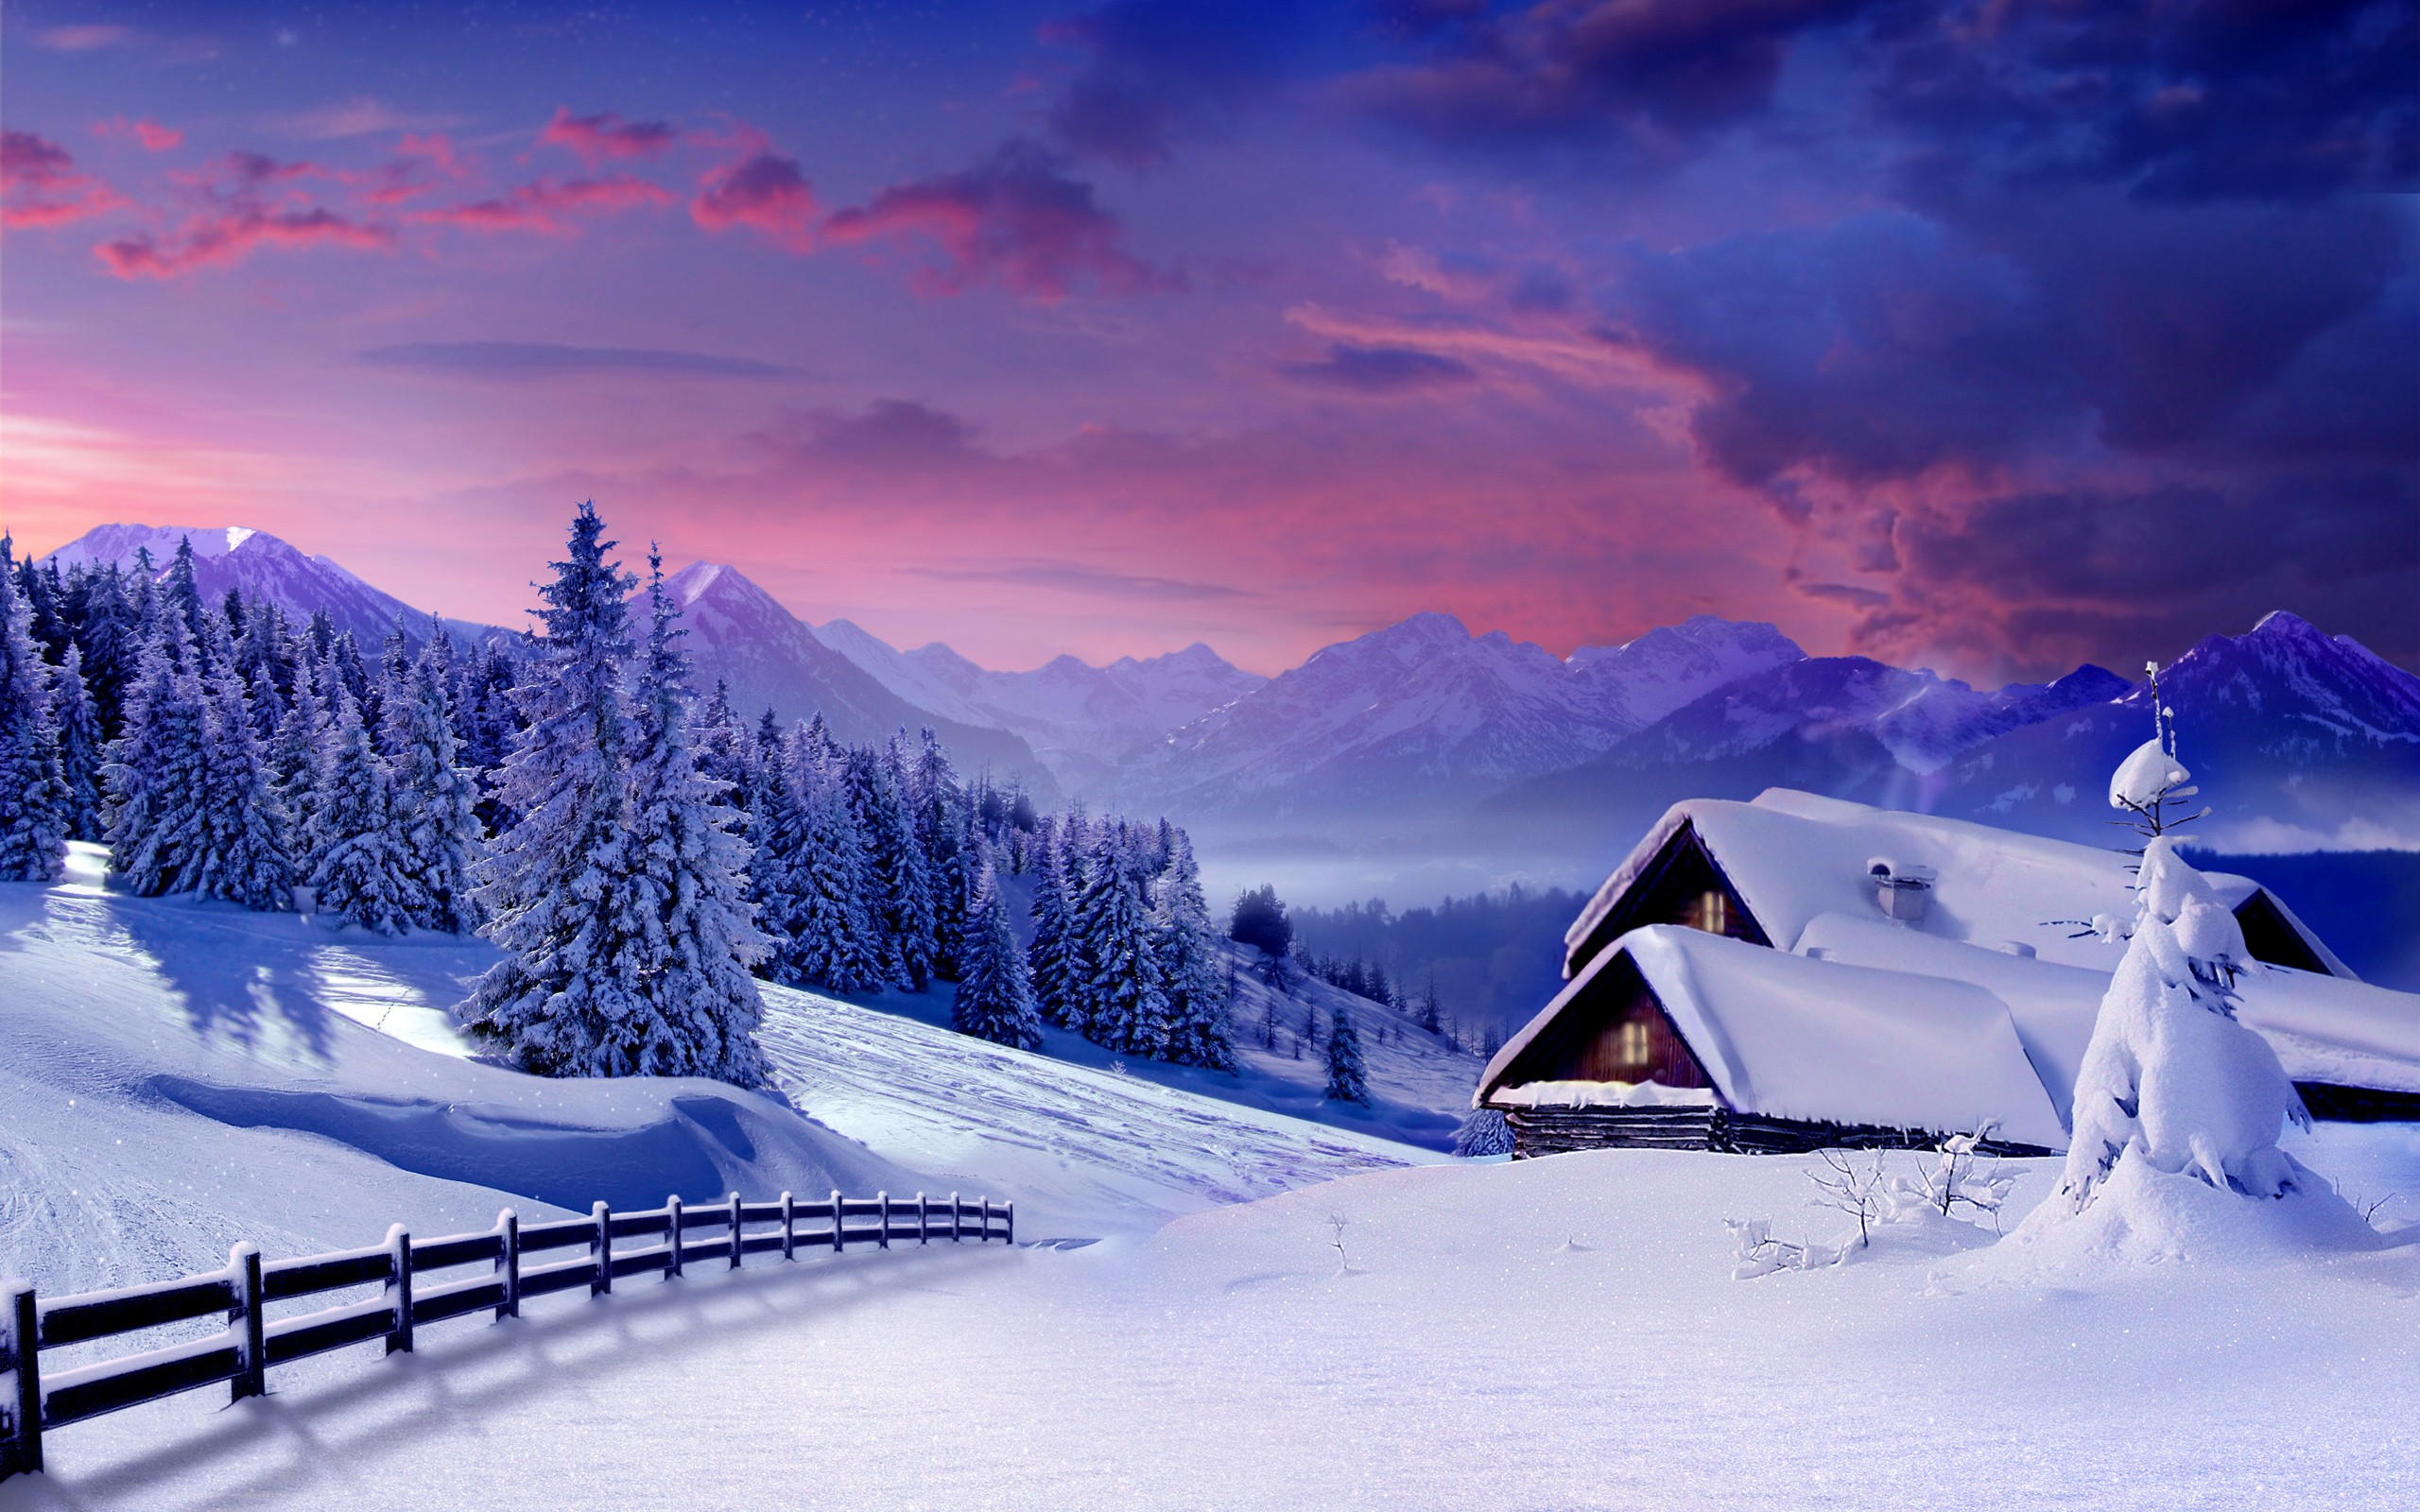 Beautiful Nature Hd Wallpapers On Wallpaperget - Nature Wallpaper Winter , HD Wallpaper & Backgrounds